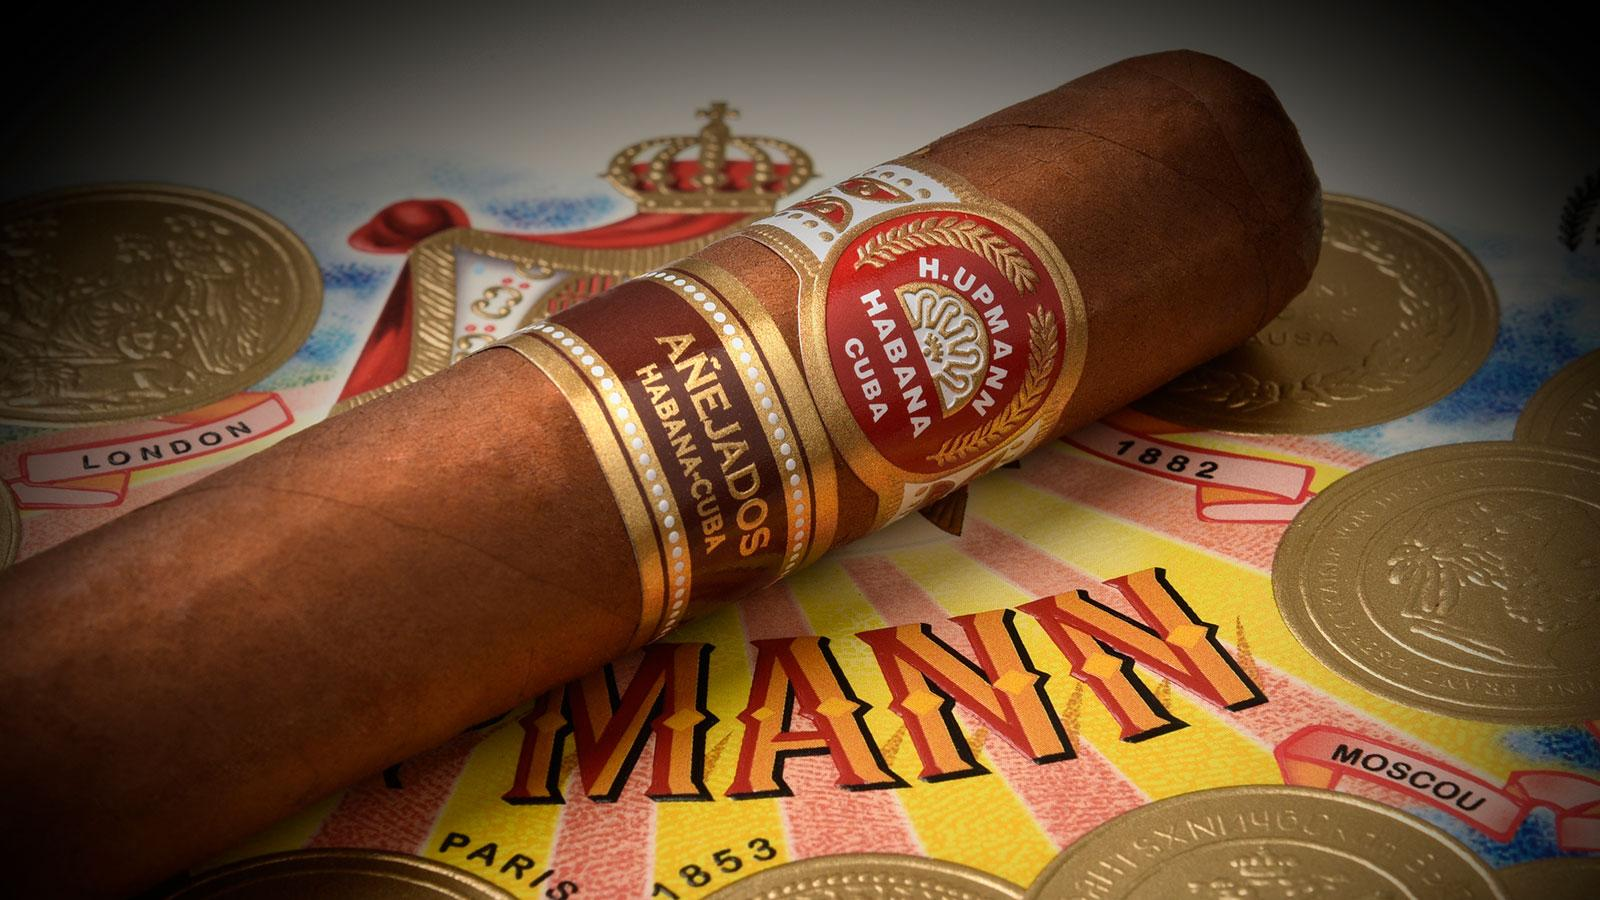 H. Upmann Robusto Añejado measures 4 7/8 inches by 50 ring gauge.